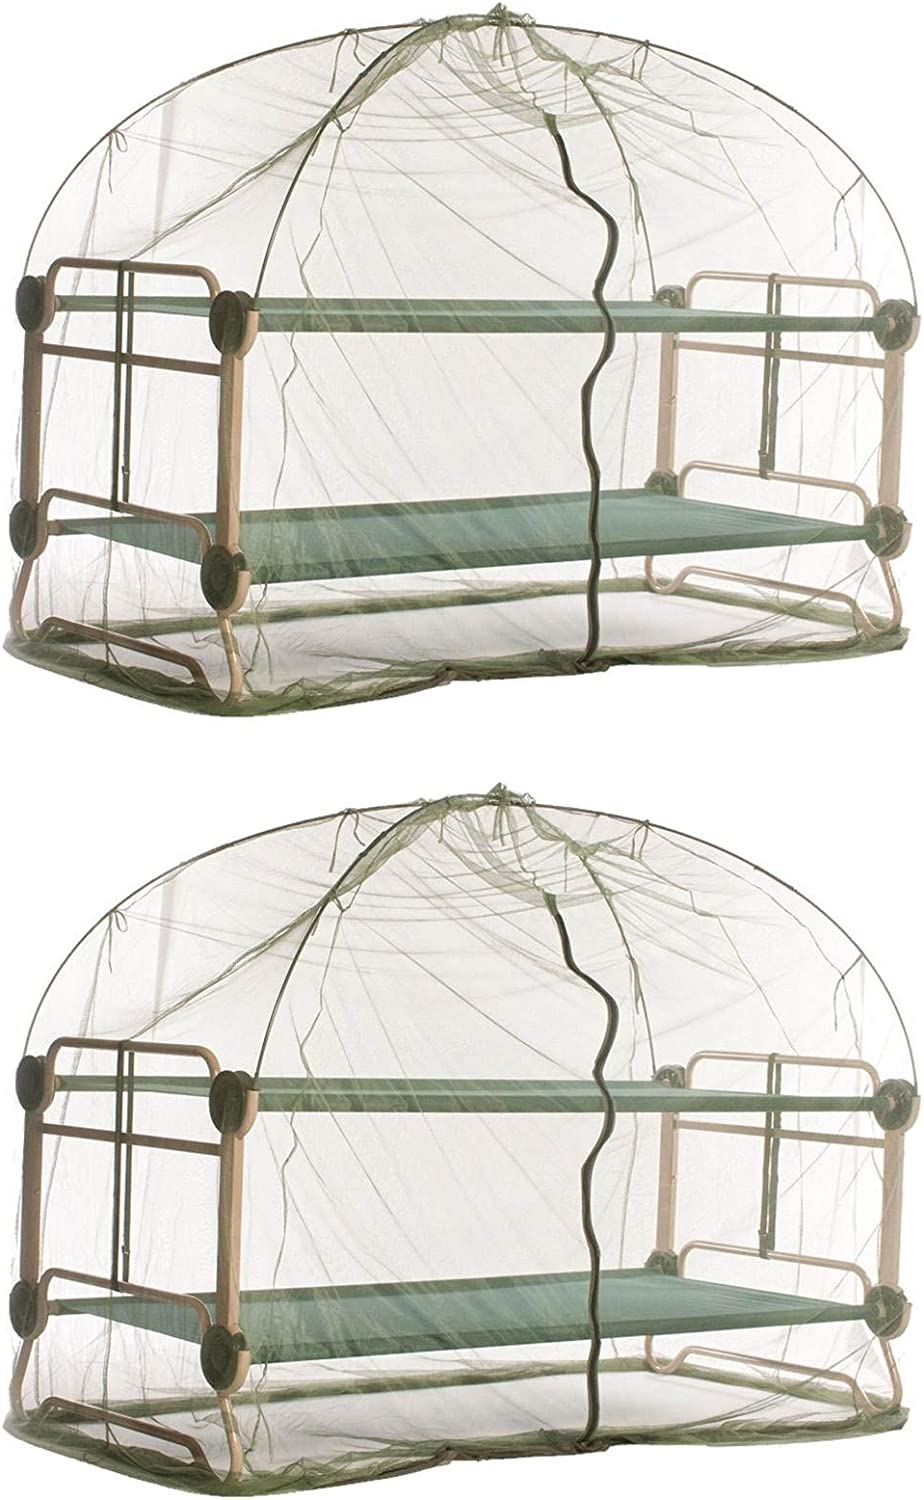 Disc-O-Bed Tucson Mall Mosquito Net and Frame for Gre Camping Cots Indefinitely Bunkable